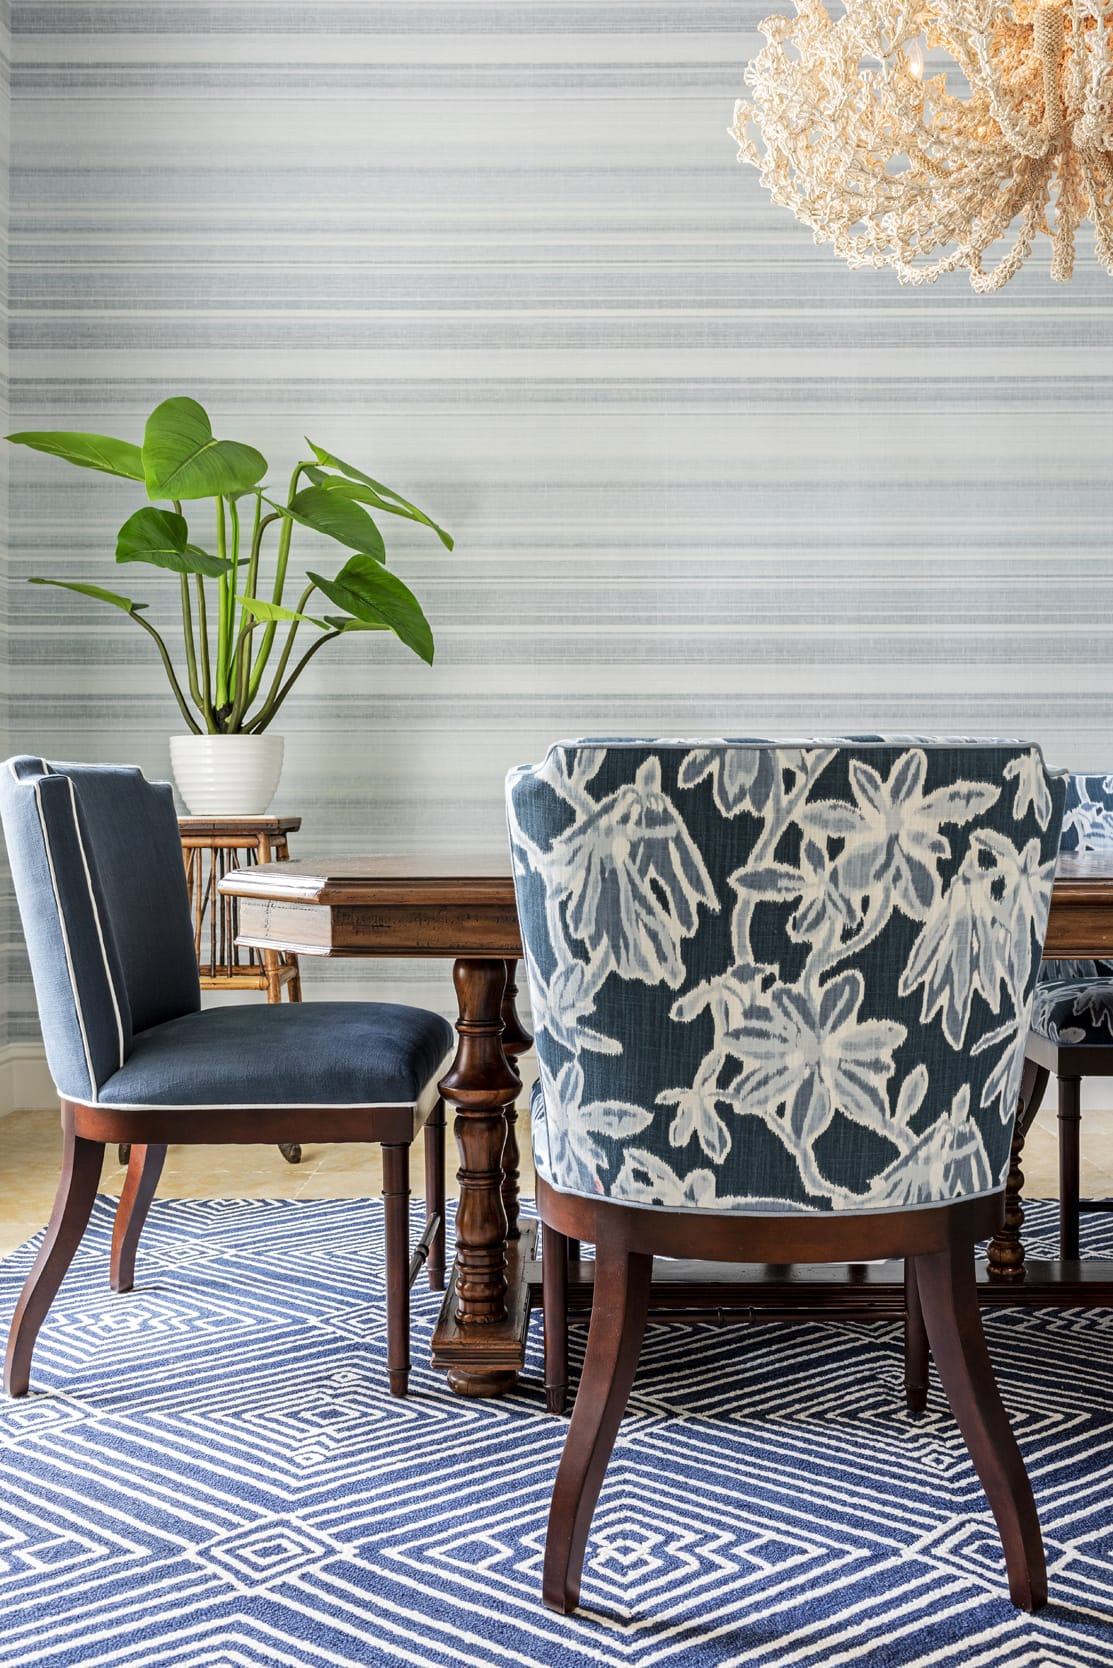 Jeffrey Fisher Home Dark Wood Table Cool Blue Linear Wall Paper Pattern Rug